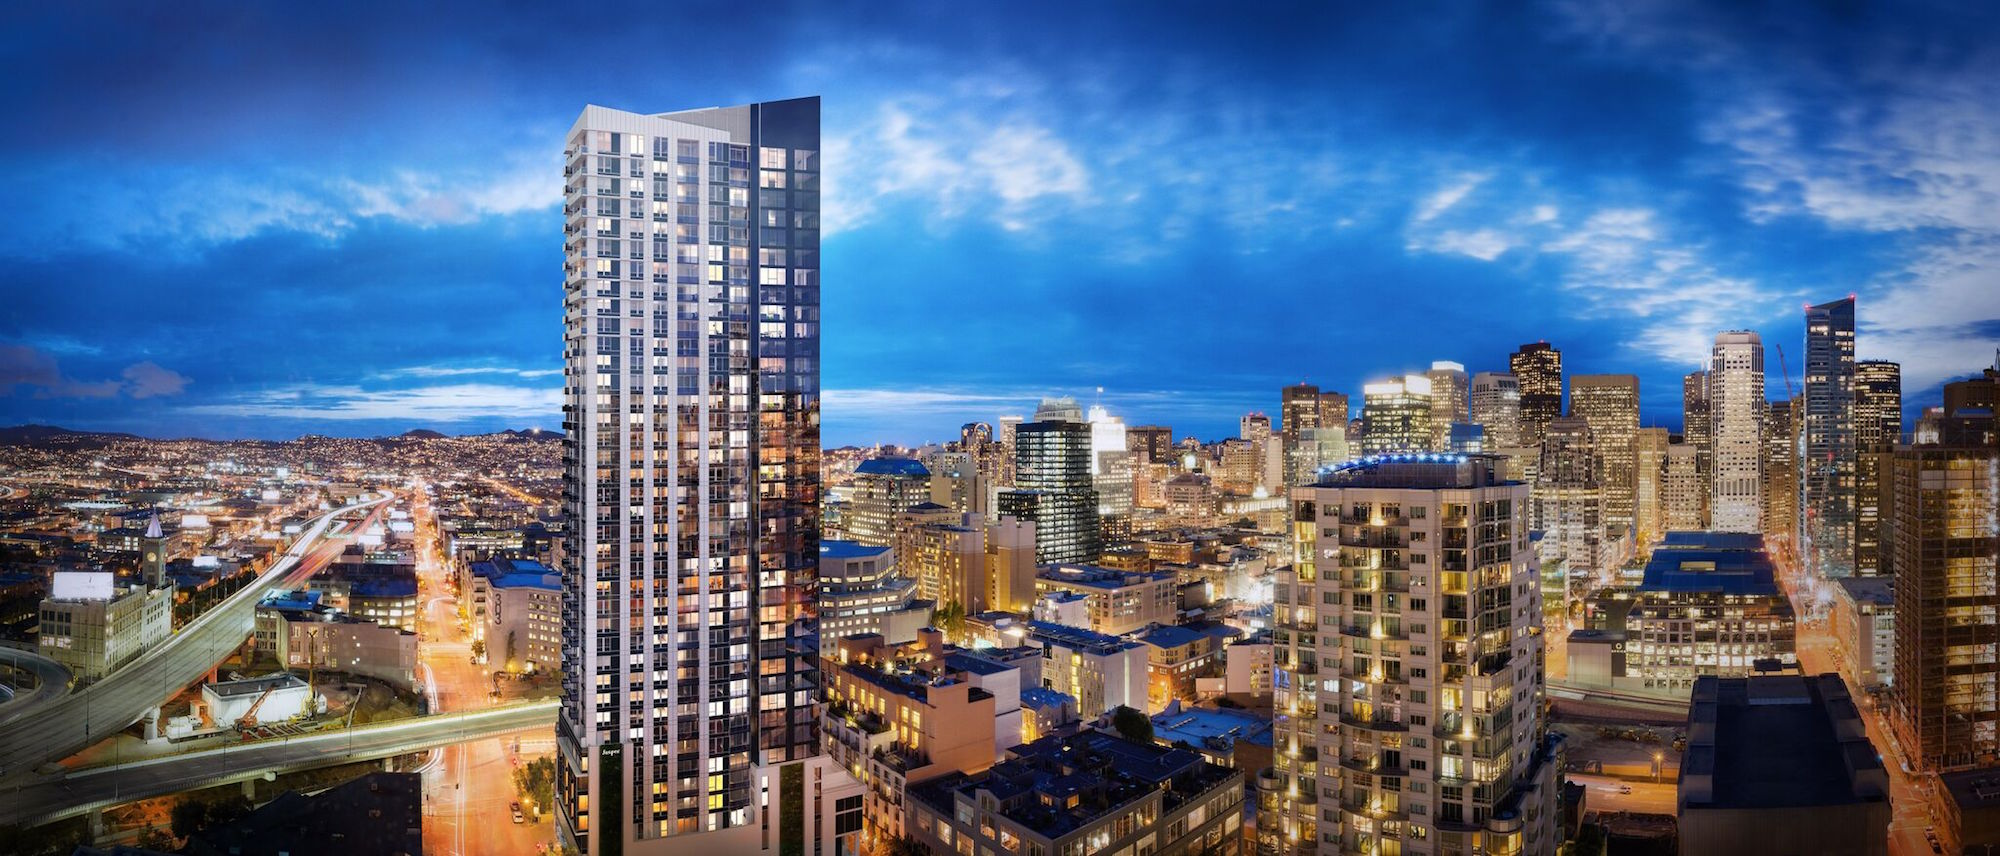 SFs Top 10 Luxury Residential High Rises